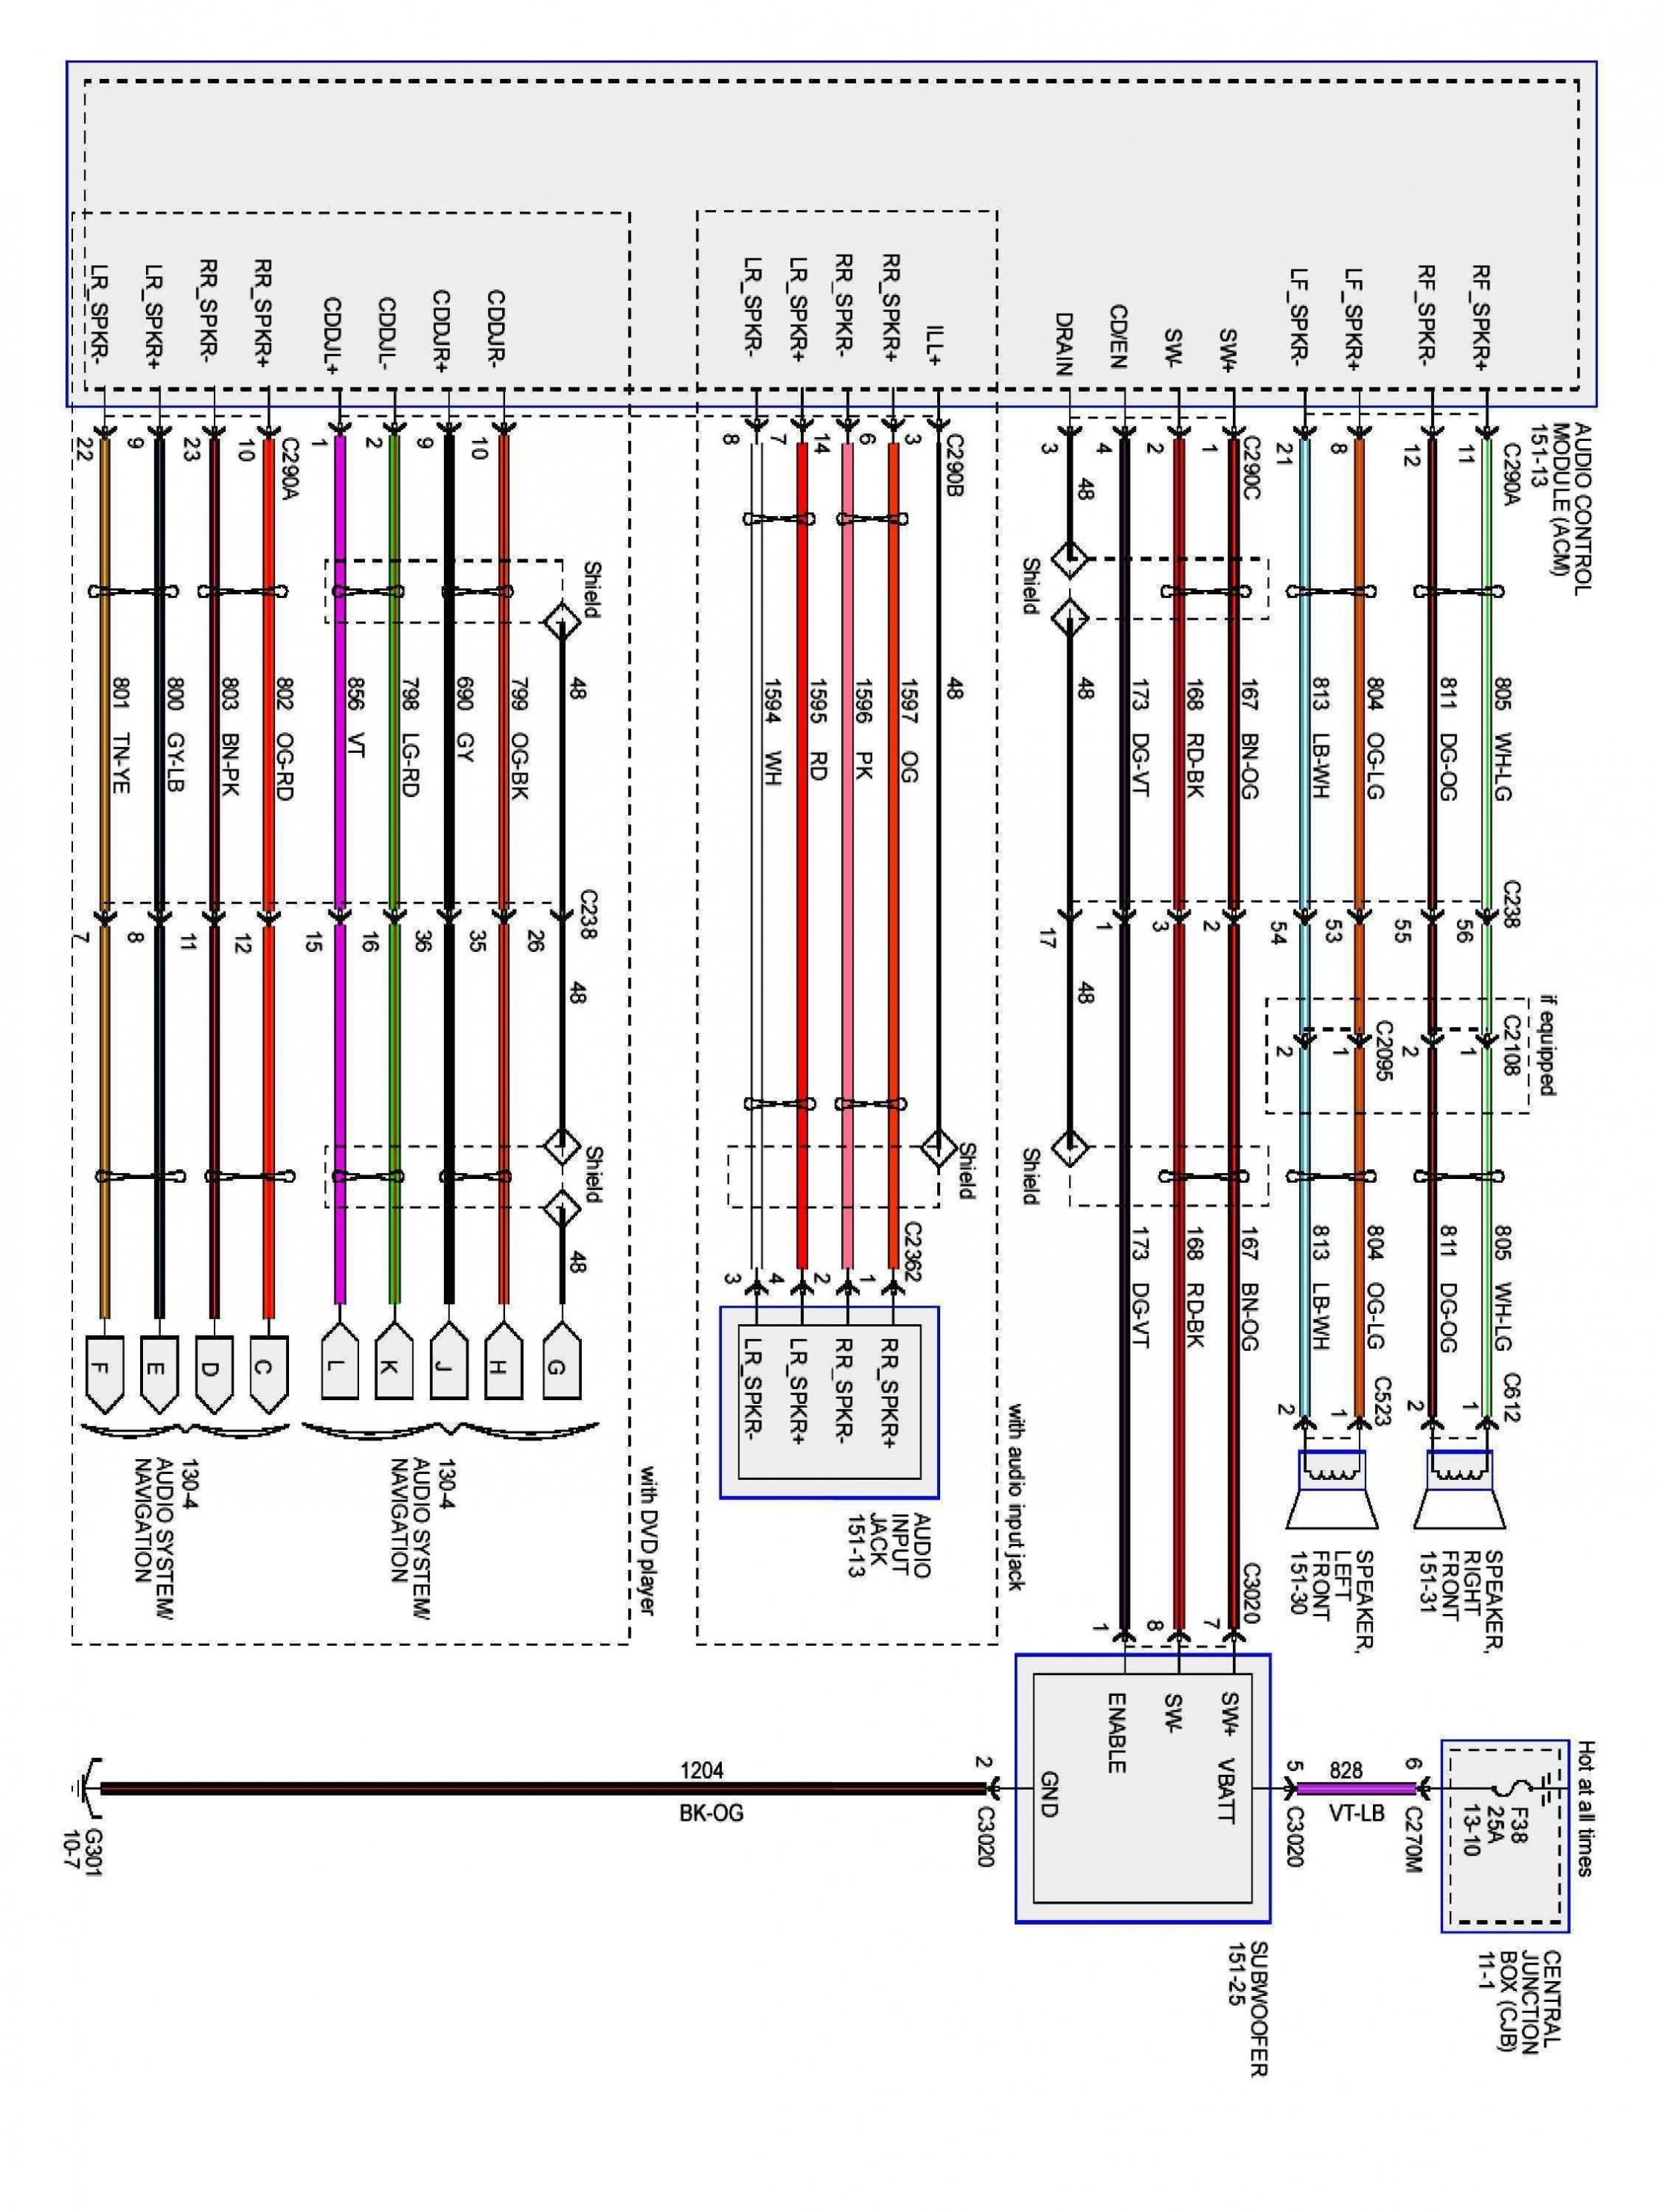 2008 F350 Trailer Wiring Harness Diagram - Data Wiring Diagram Site - Ford F250 Trailer Wiring Harness Diagram